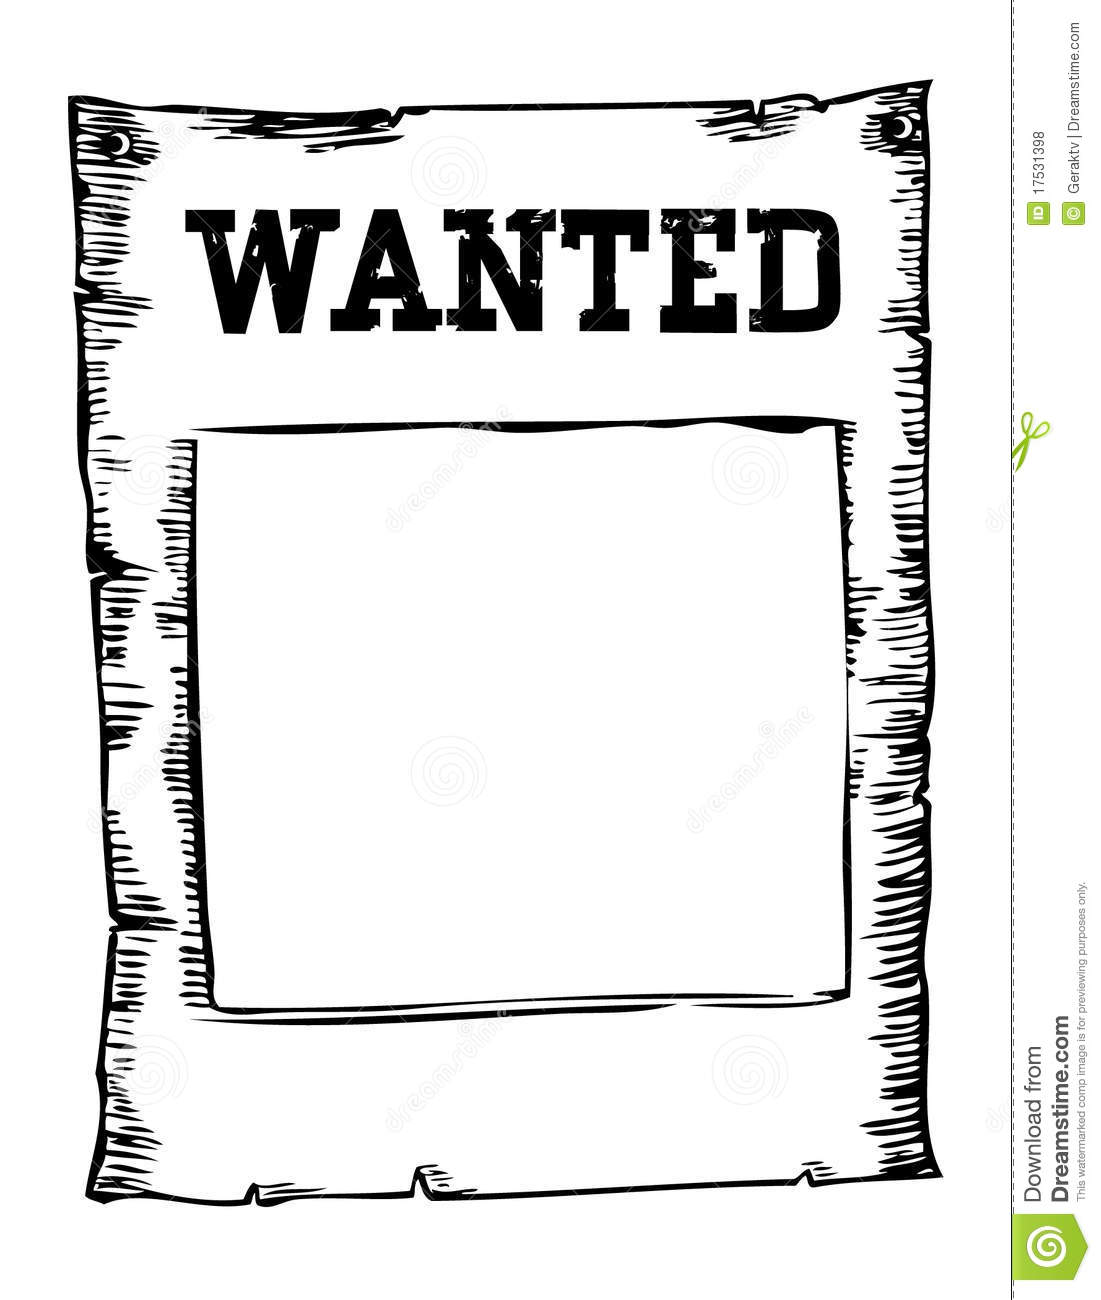 Wanted Poster Clip Art-Wanted Poster Clip Art-10